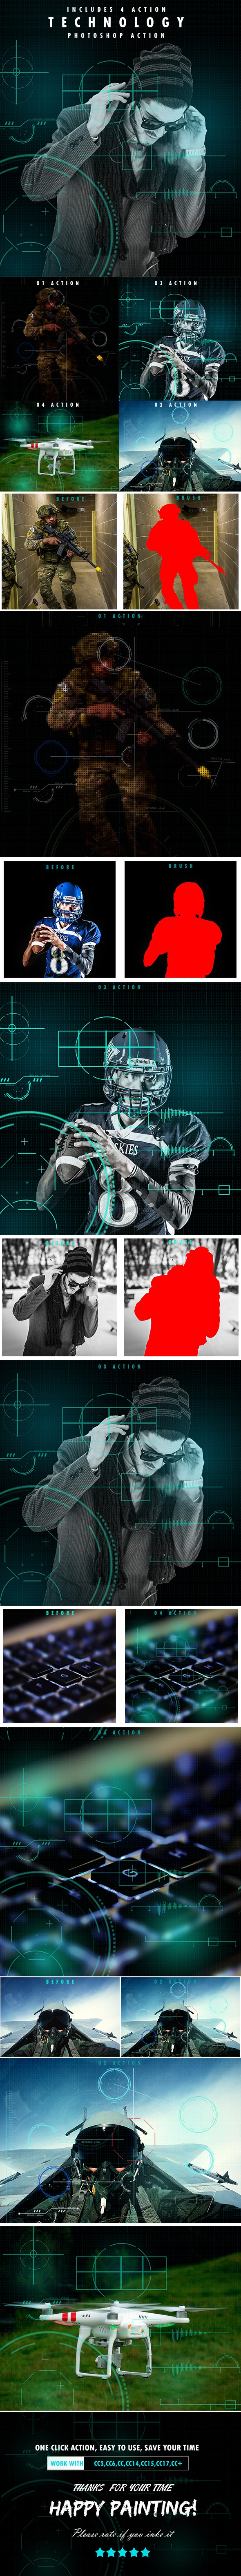 Technology Serie Photoshop Actions - Photo Effects Actions